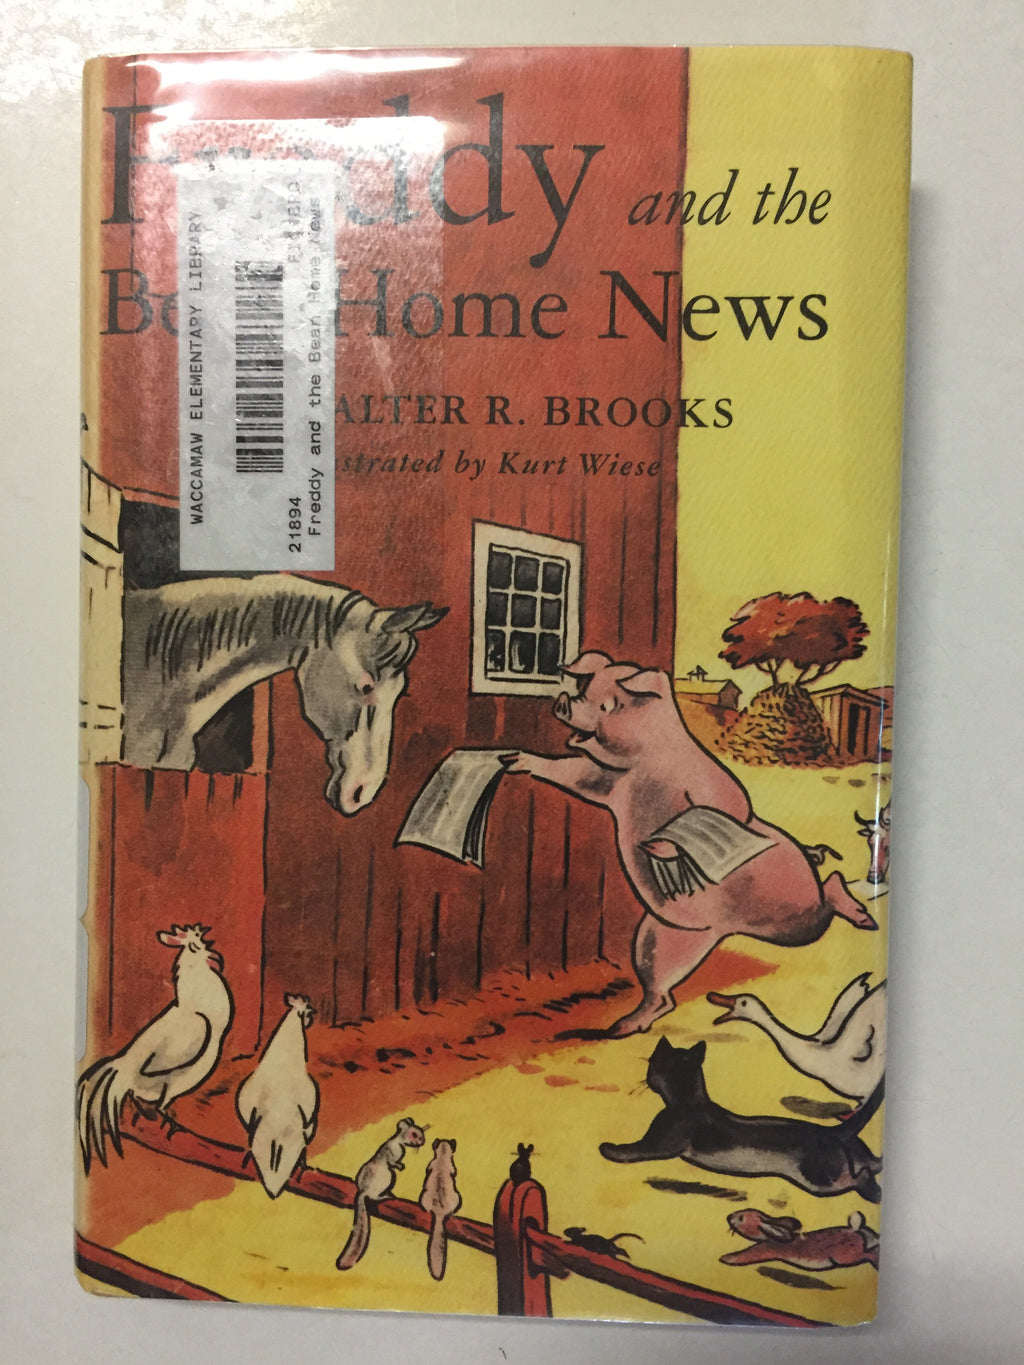 Freddy and the Bean Home News - Slick Cat Books